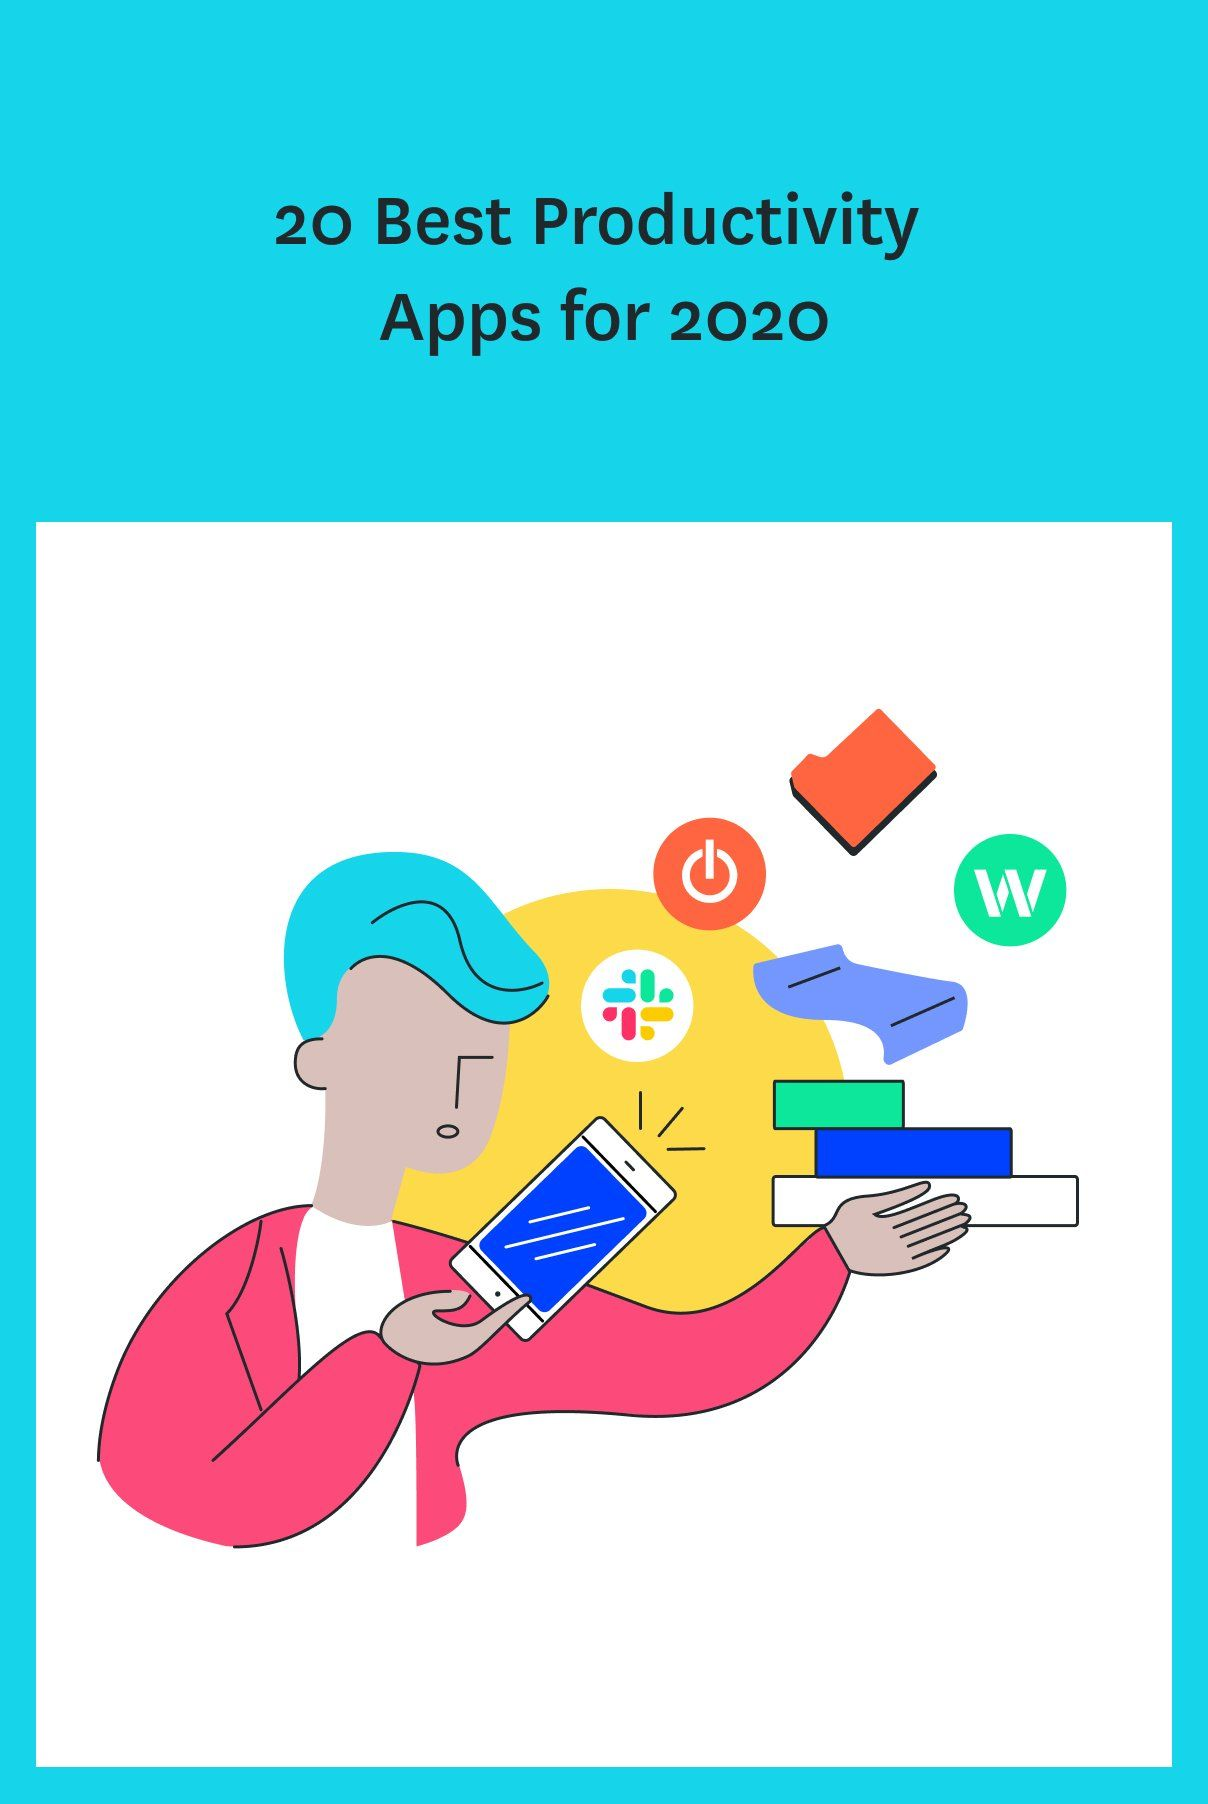 20 Best Productivity Apps for 2020 (With images